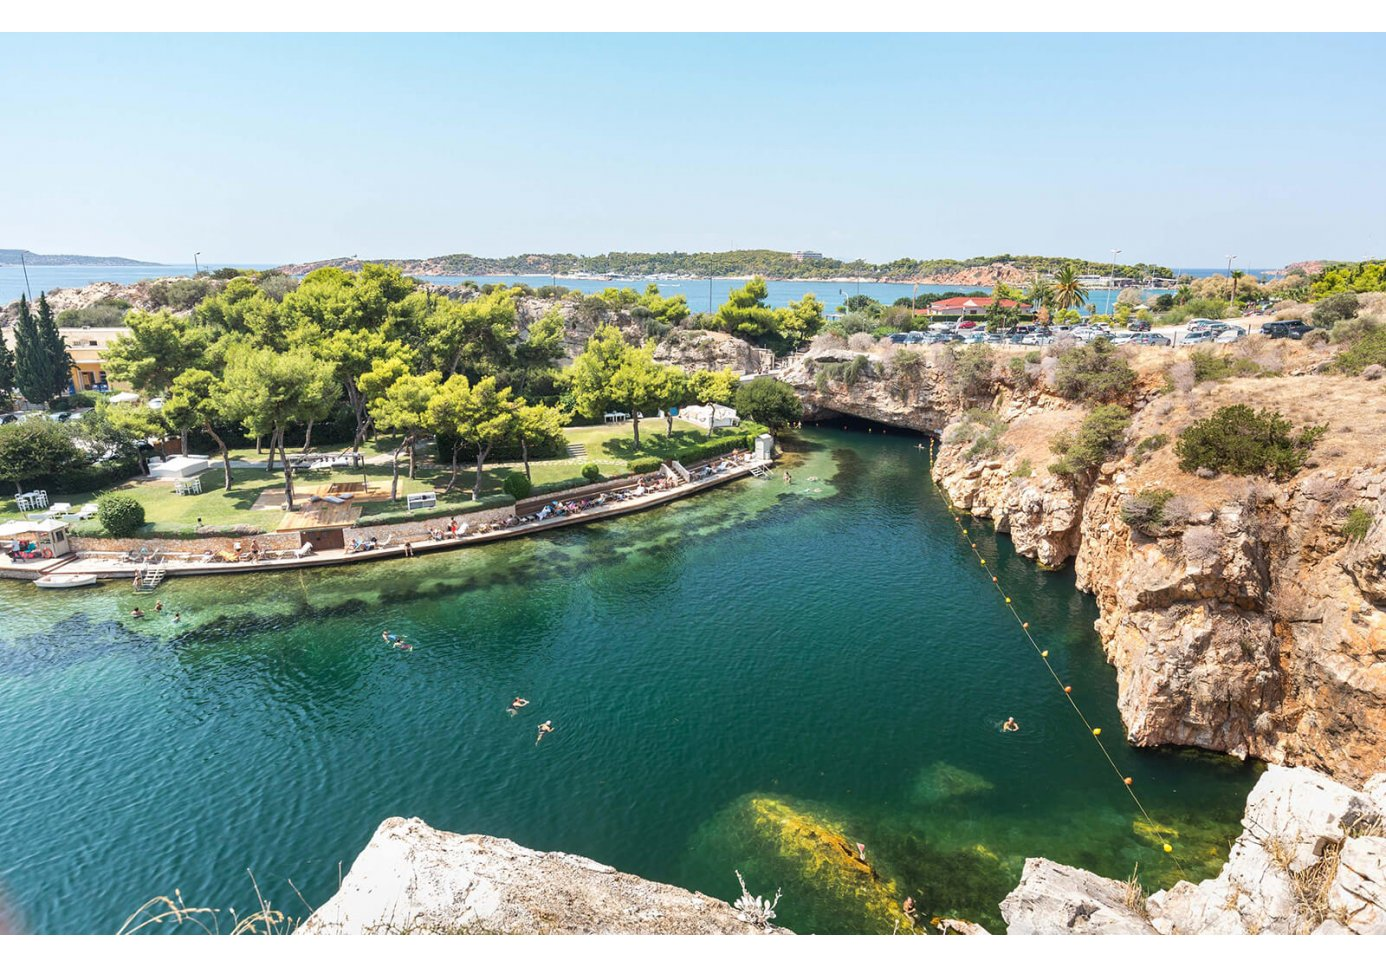 Lake Vouliagmeni in Athens